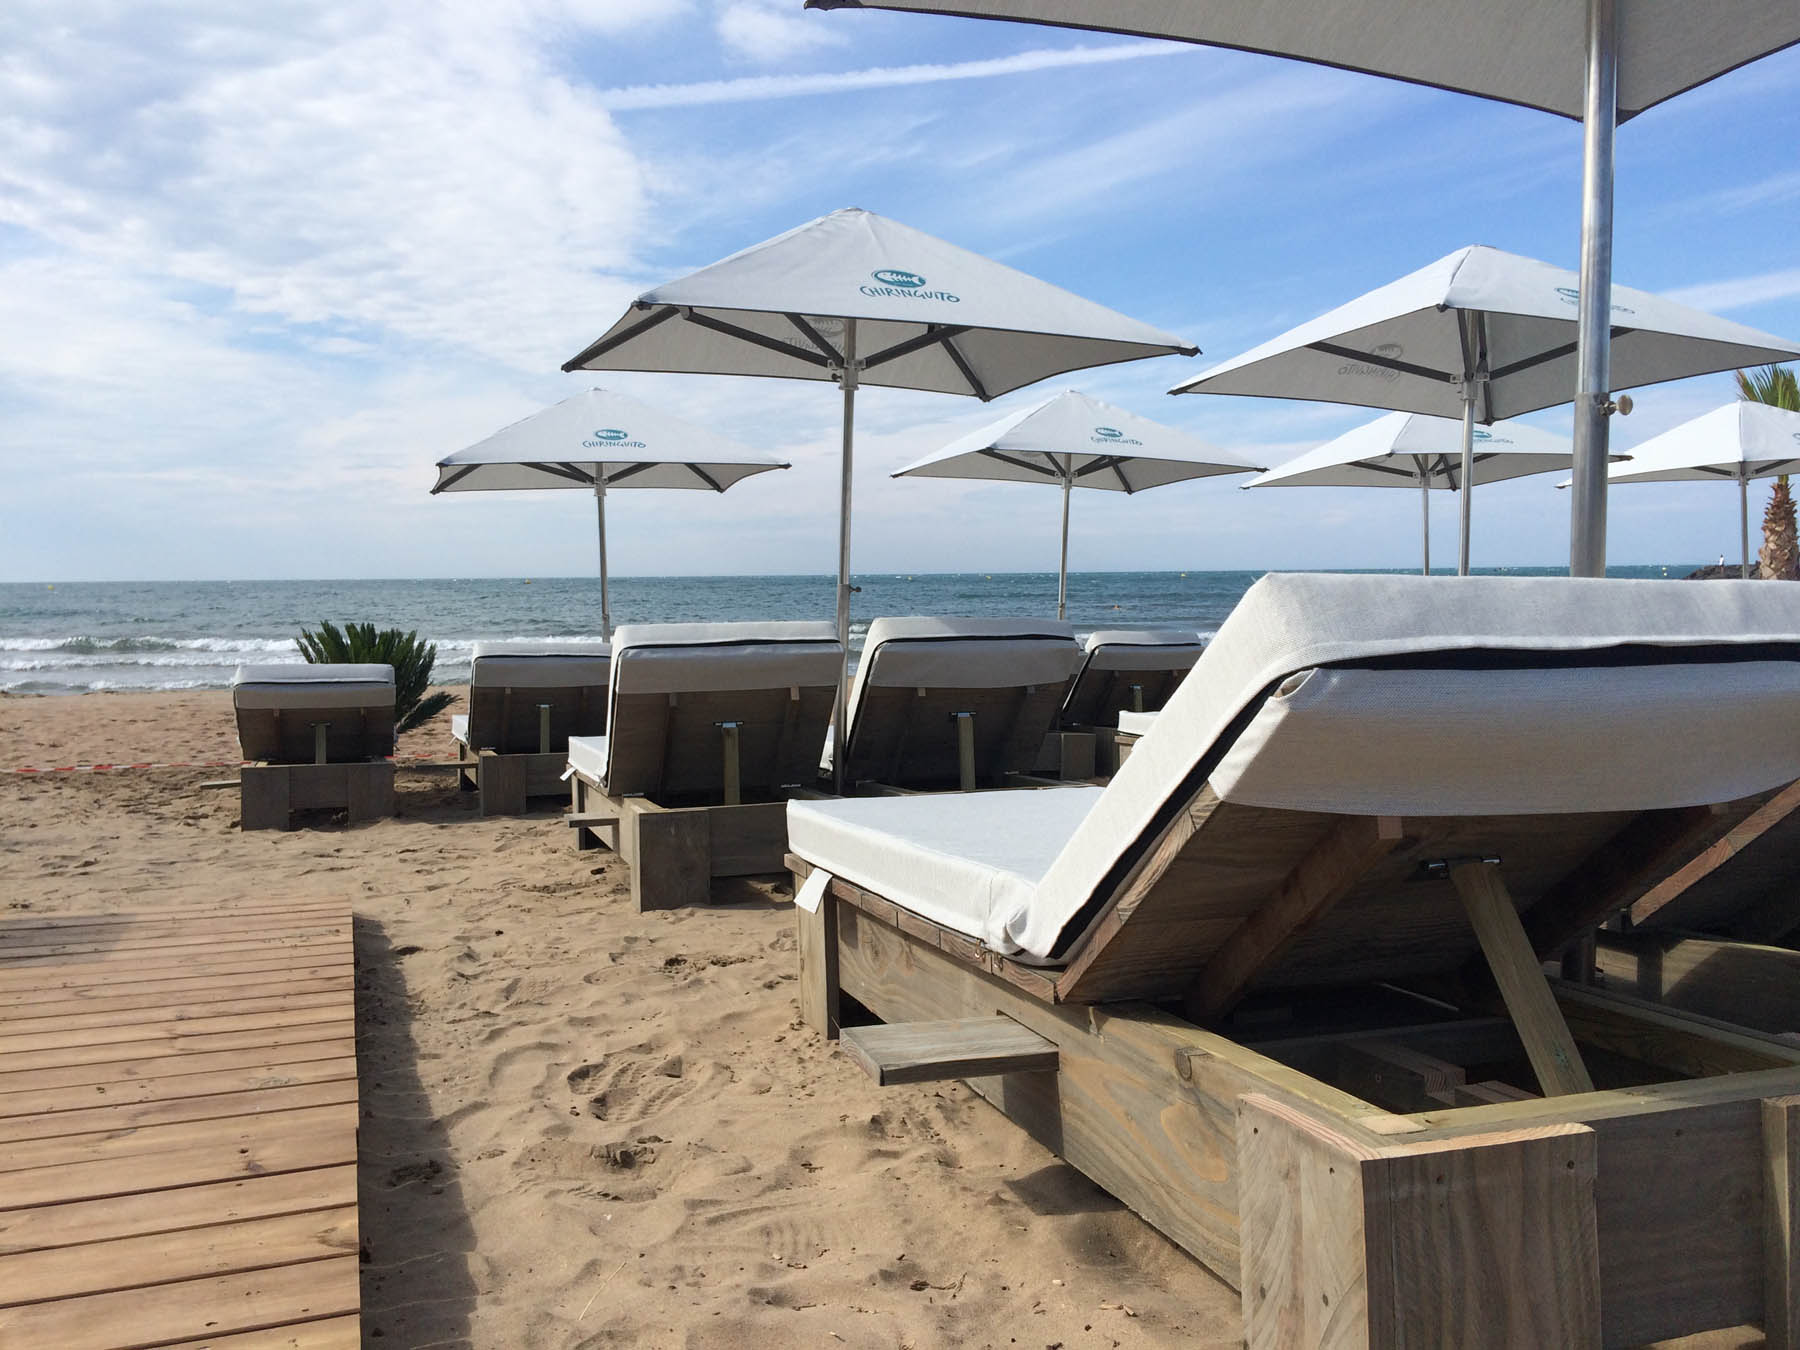 Bache Parasol Sunshades Private Beaches Professional Sunshades France